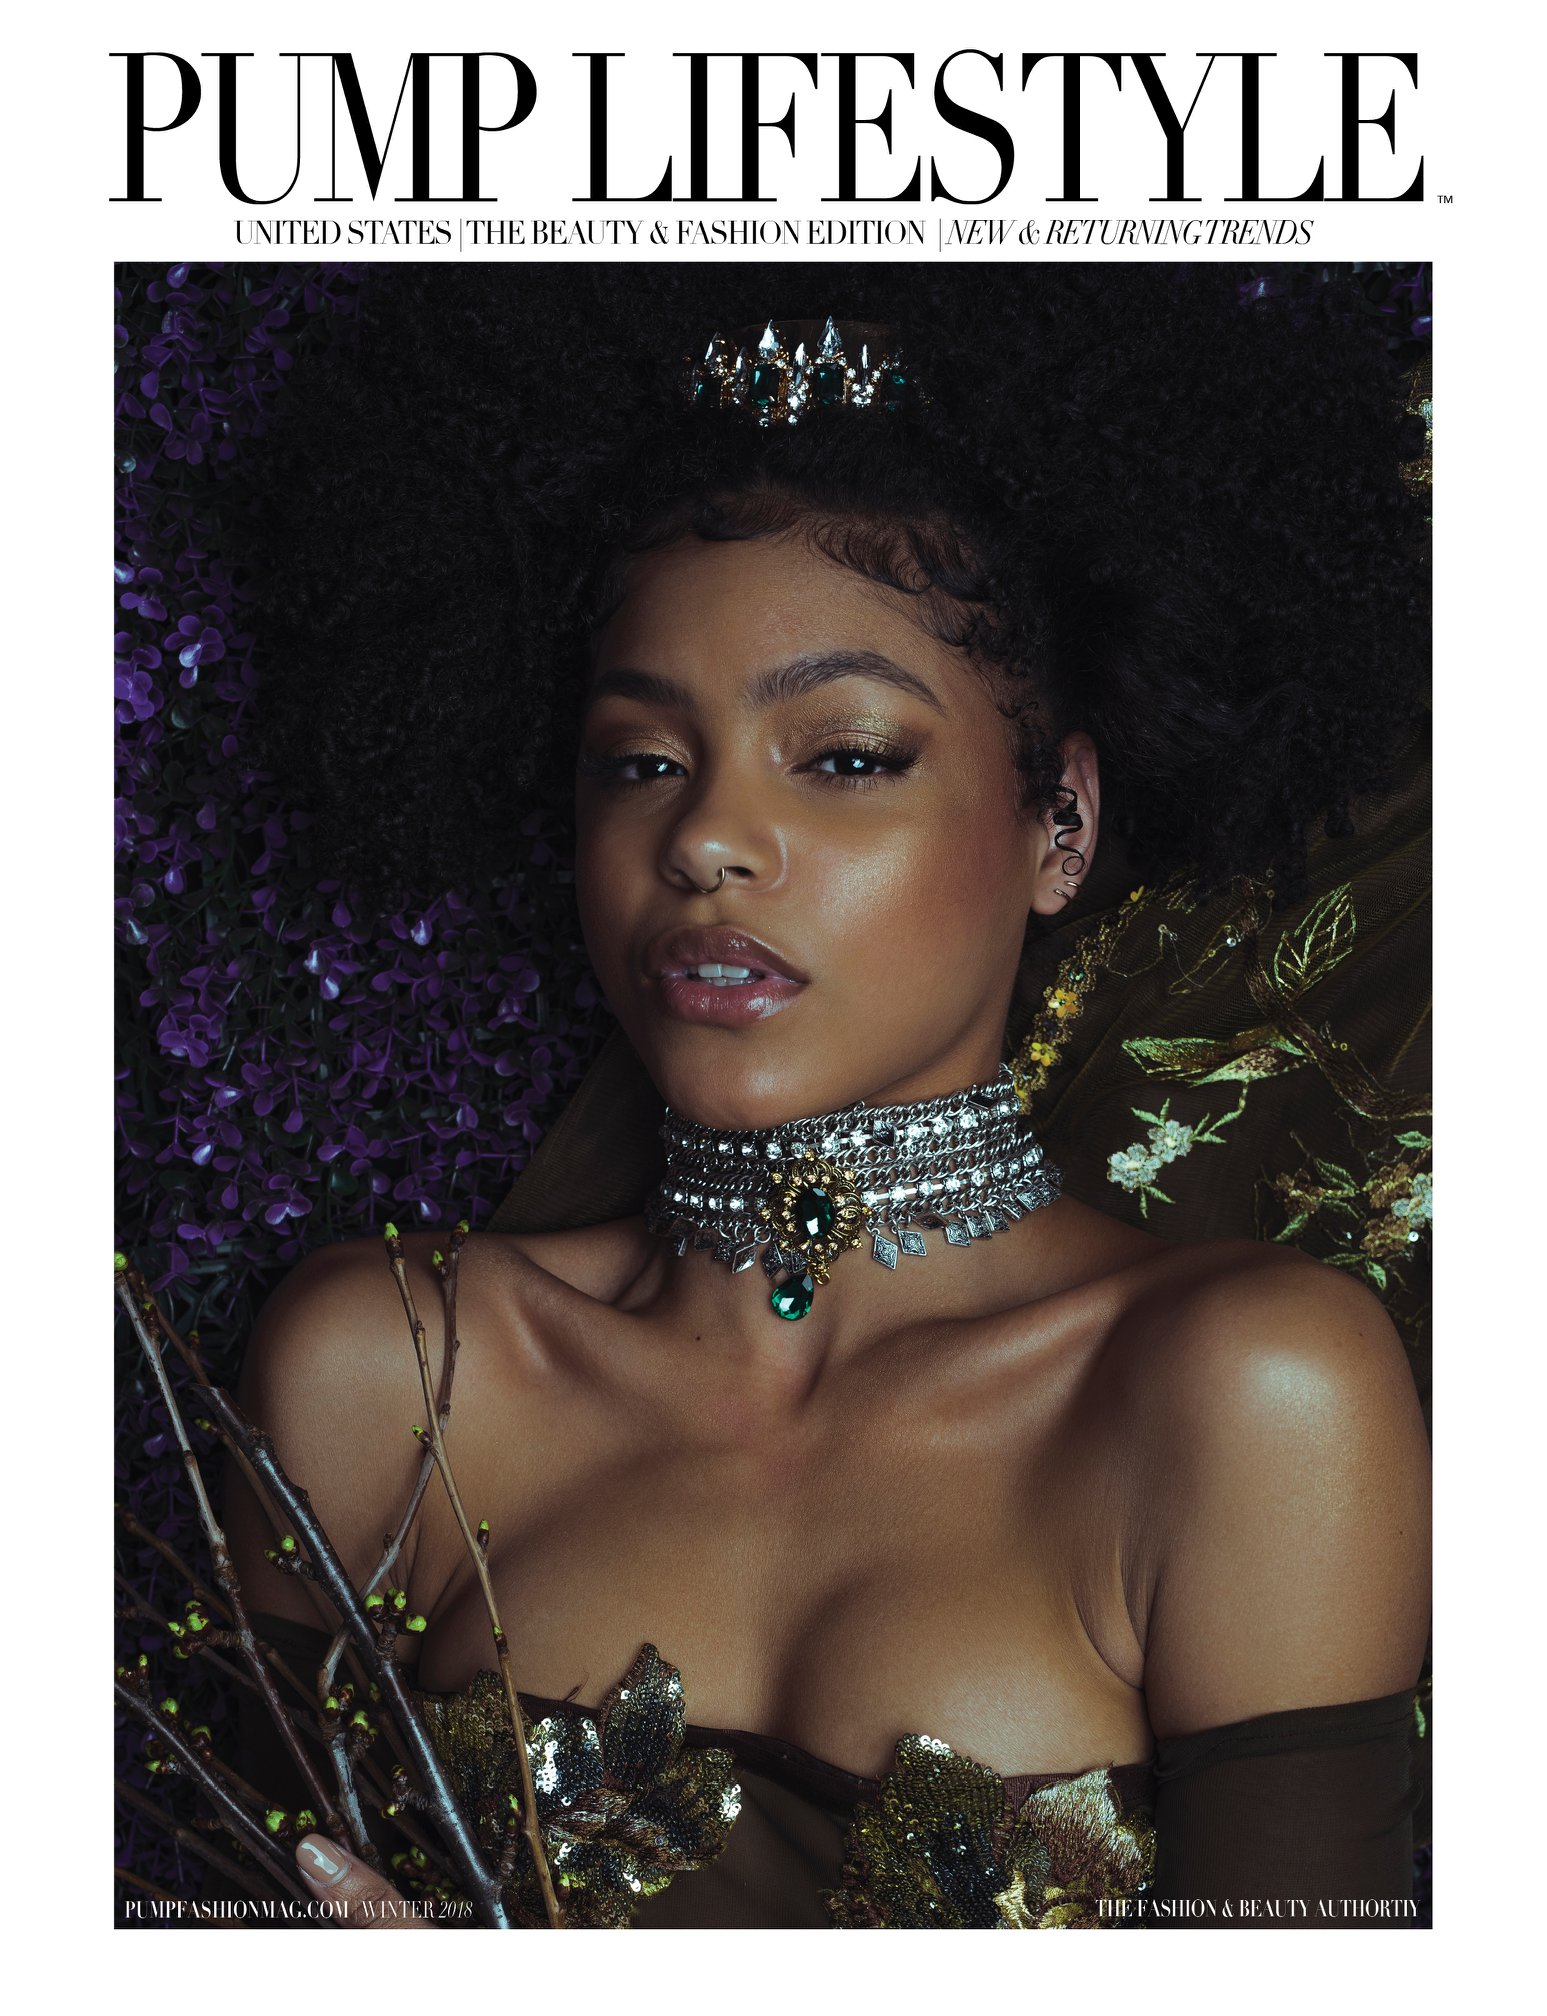 Published in PUMP Magazine December 2018  Photographer: Artist Regina Wamba Makeup: Laura Elizabeth DuVall Seaboy Hair: Mark Navarro Hair & Makeup Gowns: Jacqueline Amissah Addison Accessories: Zong Xiong  Model: Jordan Shepherd